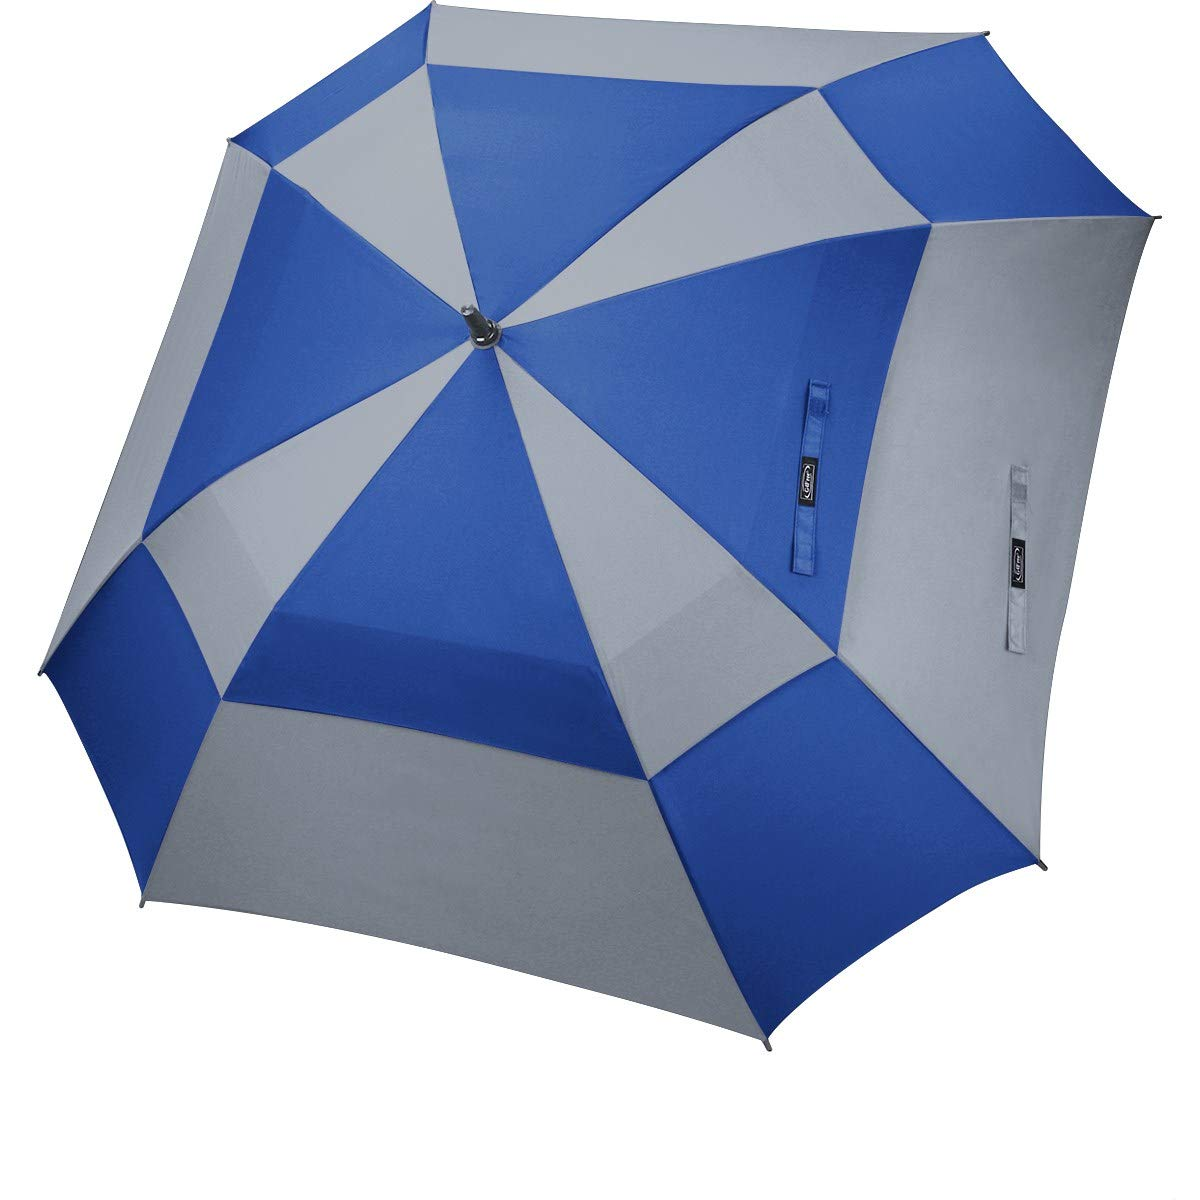 G4Free Extra Large Golf Umbrella Double Canopy Vented Square Umbrella Windproof Automatic Open 62 Inch Oversize Stick Umbrella for Men Women (Blue+Grey) by G4Free